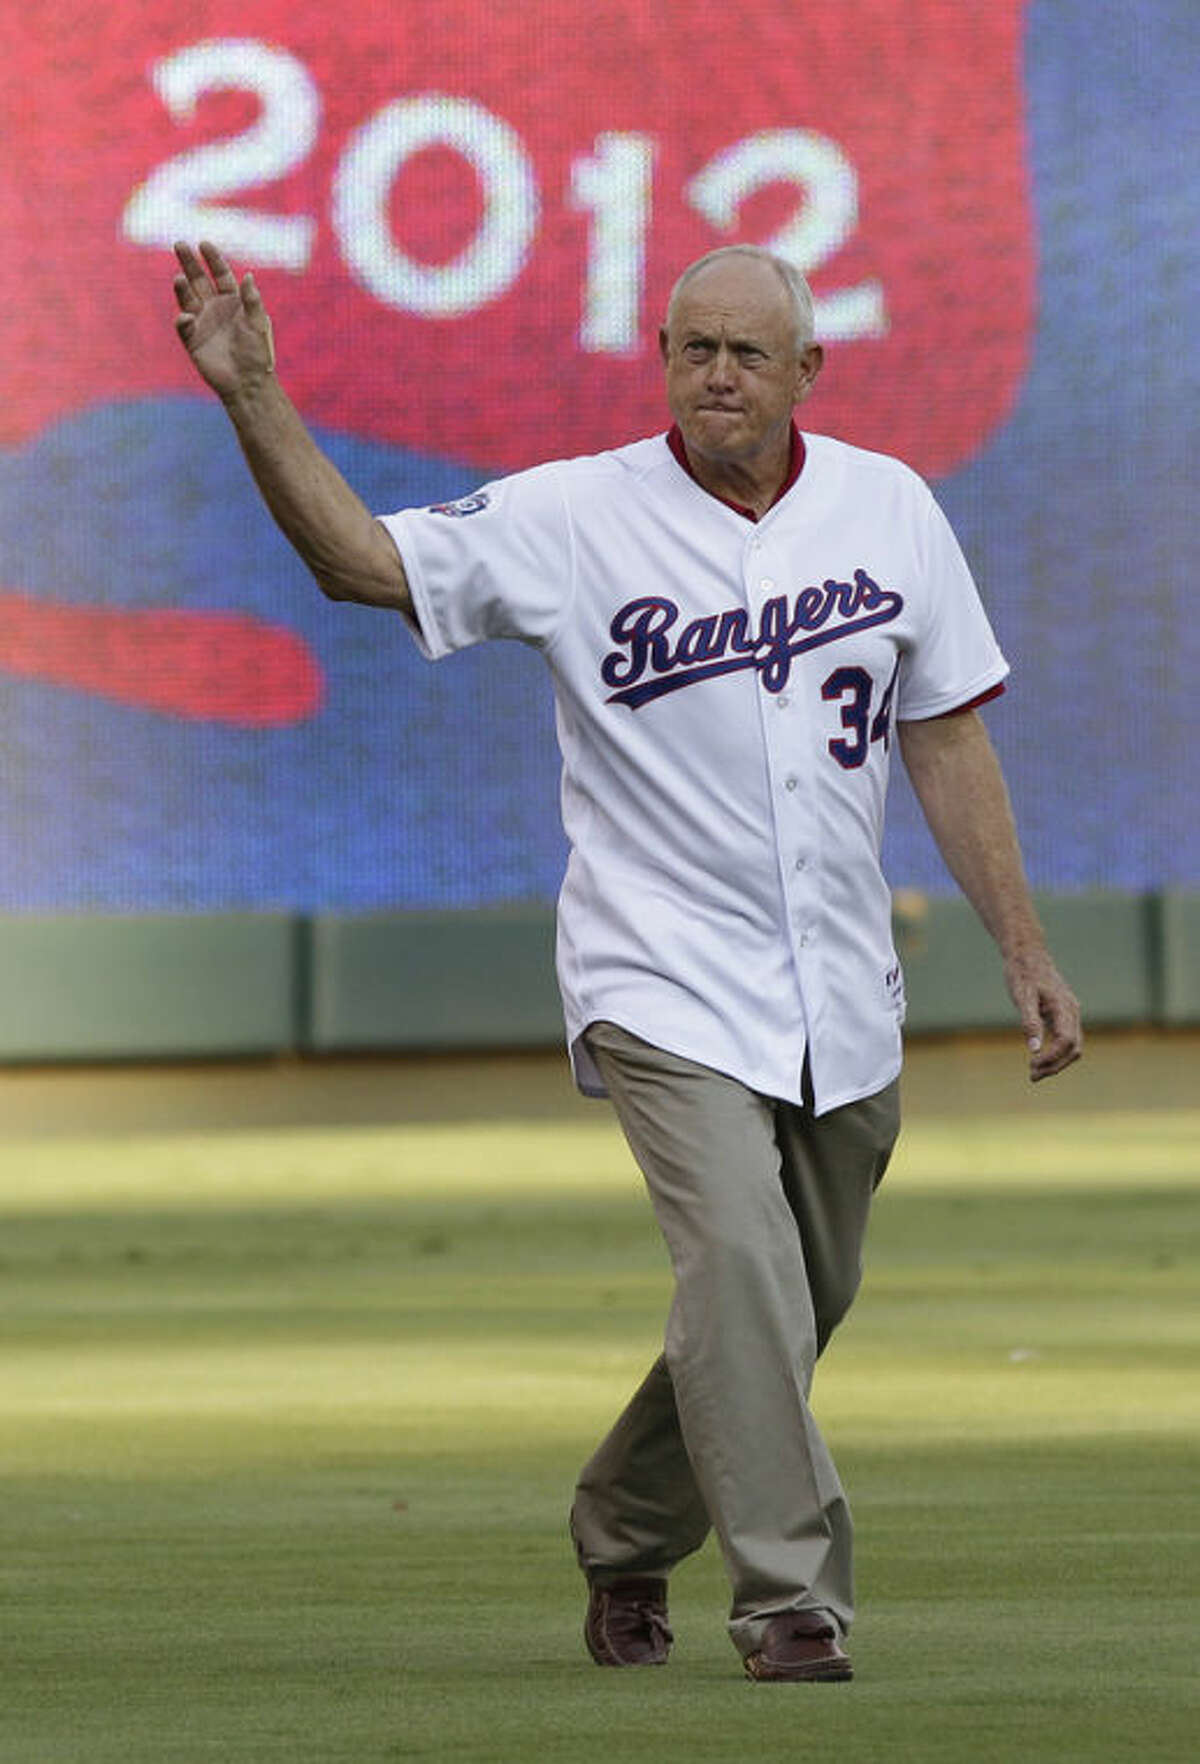 FILE - In this Aug. 11, 2012, file photo, Texas Rangers CEO Nolan Ryan waves to fans before a baseball game in Arlington, Texas. Ryan announced in a statement on Thursday, Oct. 17, 2013, that he hs retiring after six years of serving as CEO of the Rangers. The Hall of Fame pitcher became the 10th president of the Rangers in February 2008 and became chief executive officer three years later. (AP Photo/LM Otero, File)